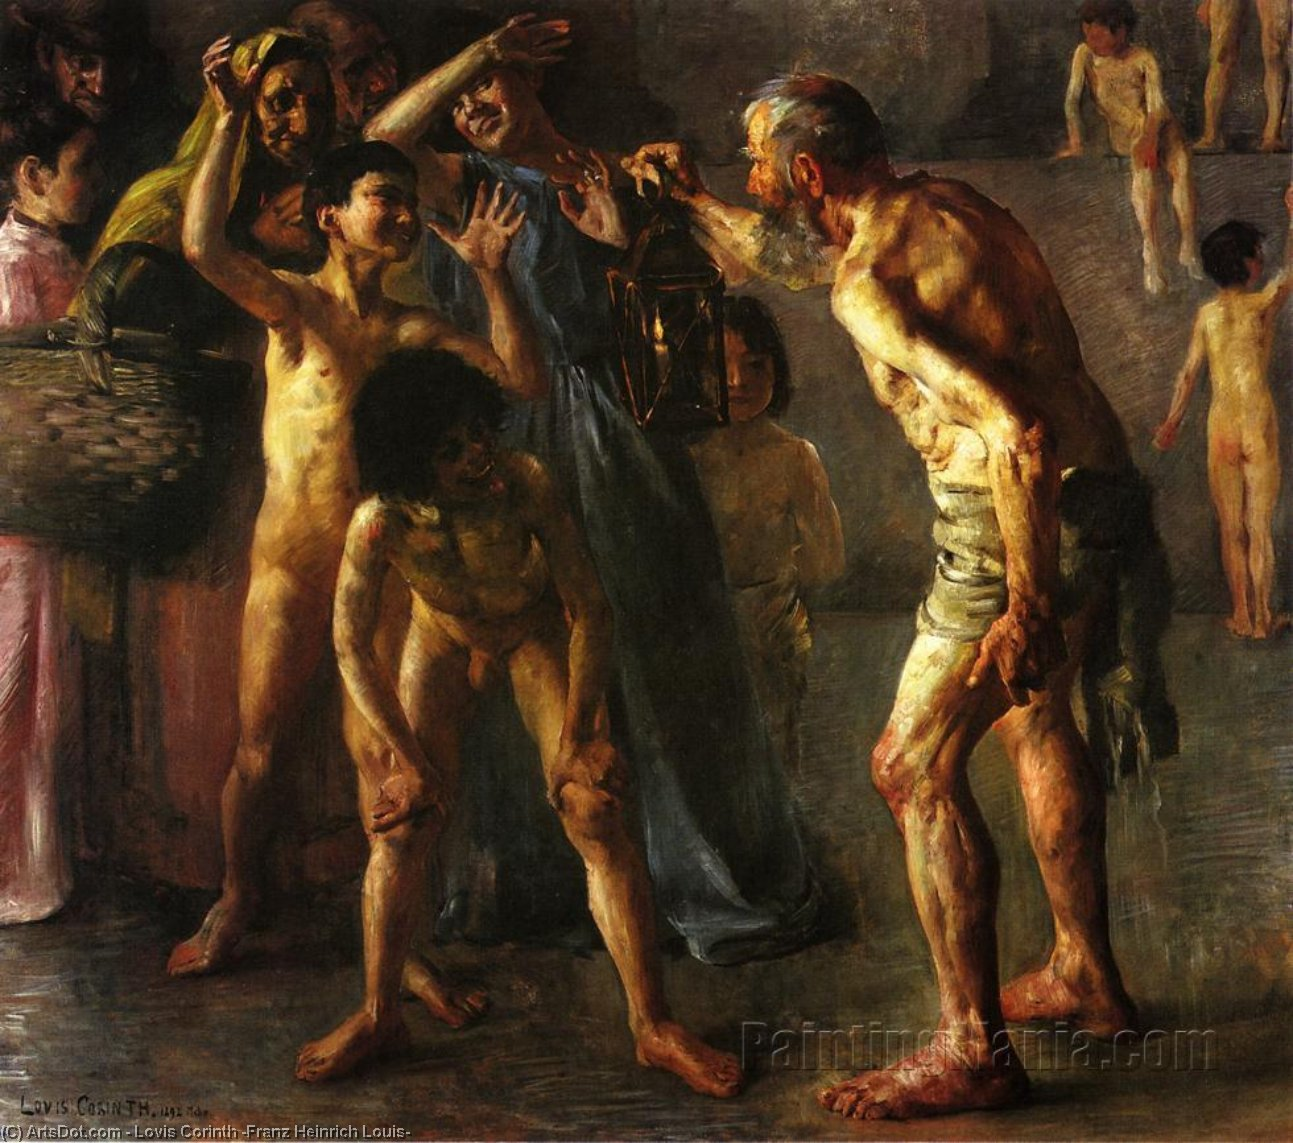 Wikioo.org - The Encyclopedia of Fine Arts - Painting, Artwork by Lovis Corinth (Franz Heinrich Louis) - Diogenes